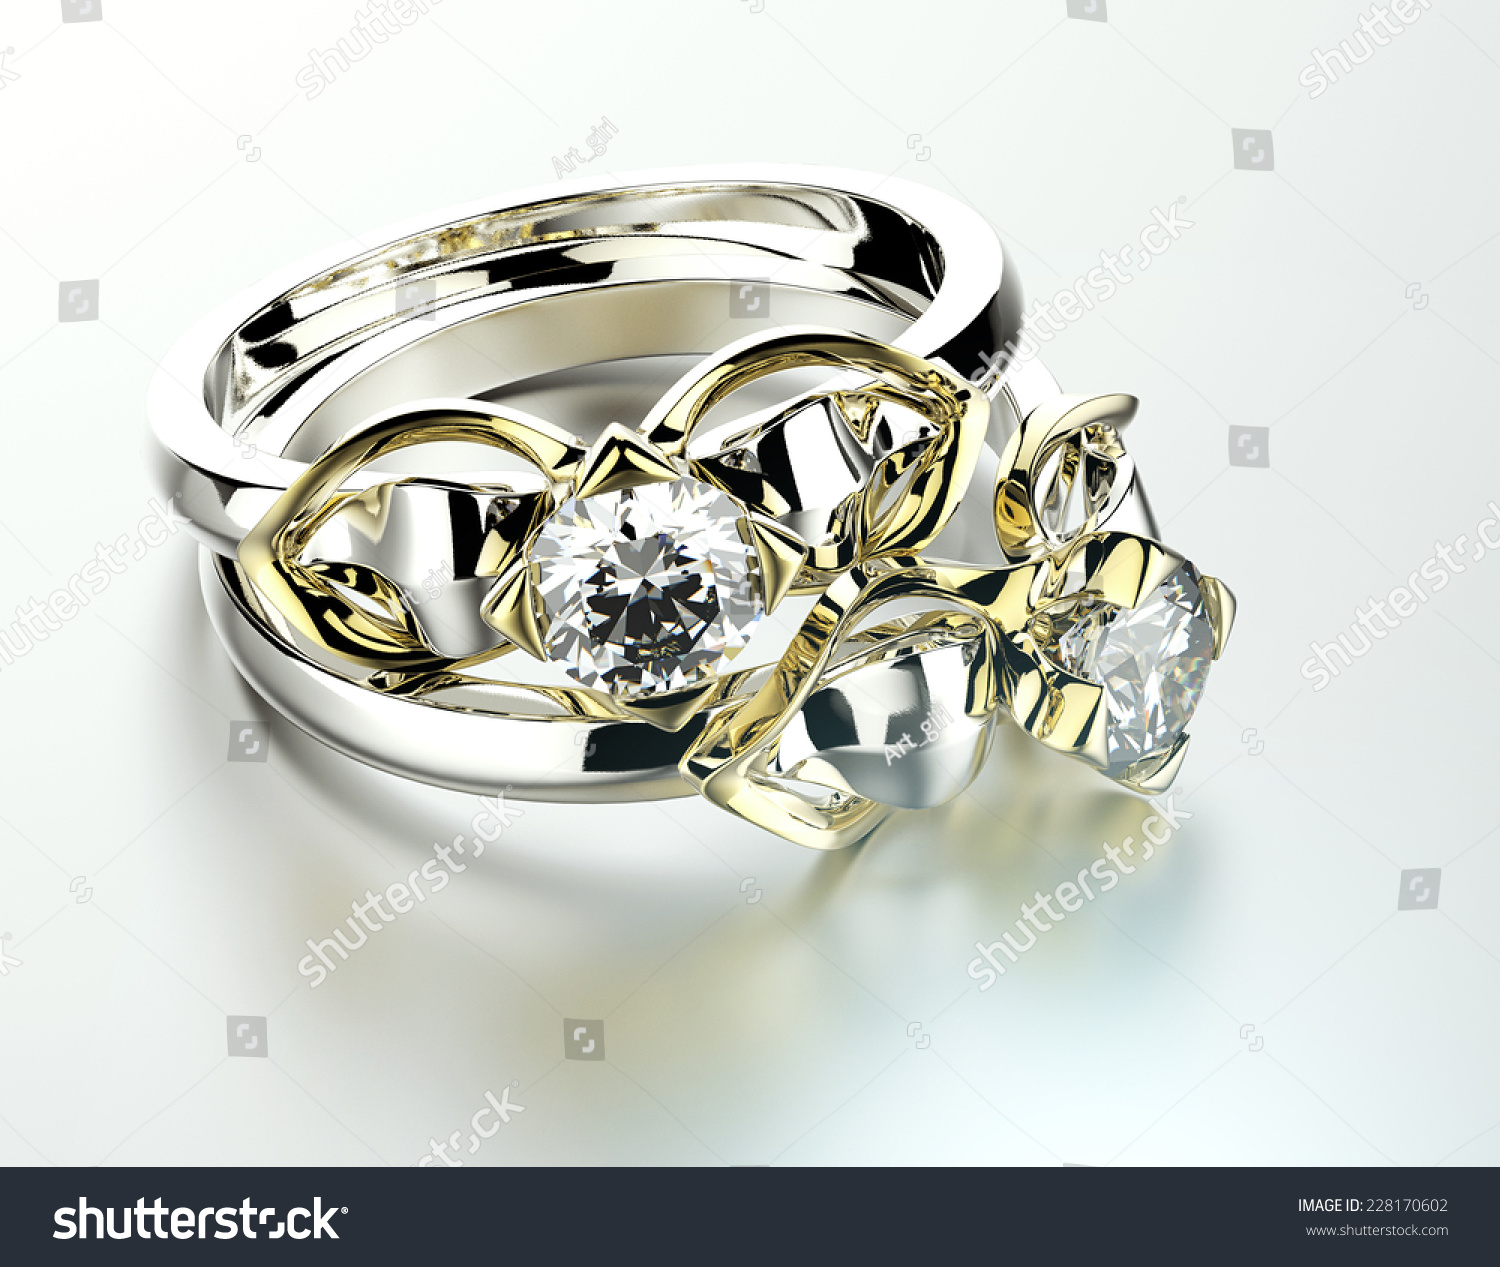 holding stock box photo in businessman ring gigantic diamond a